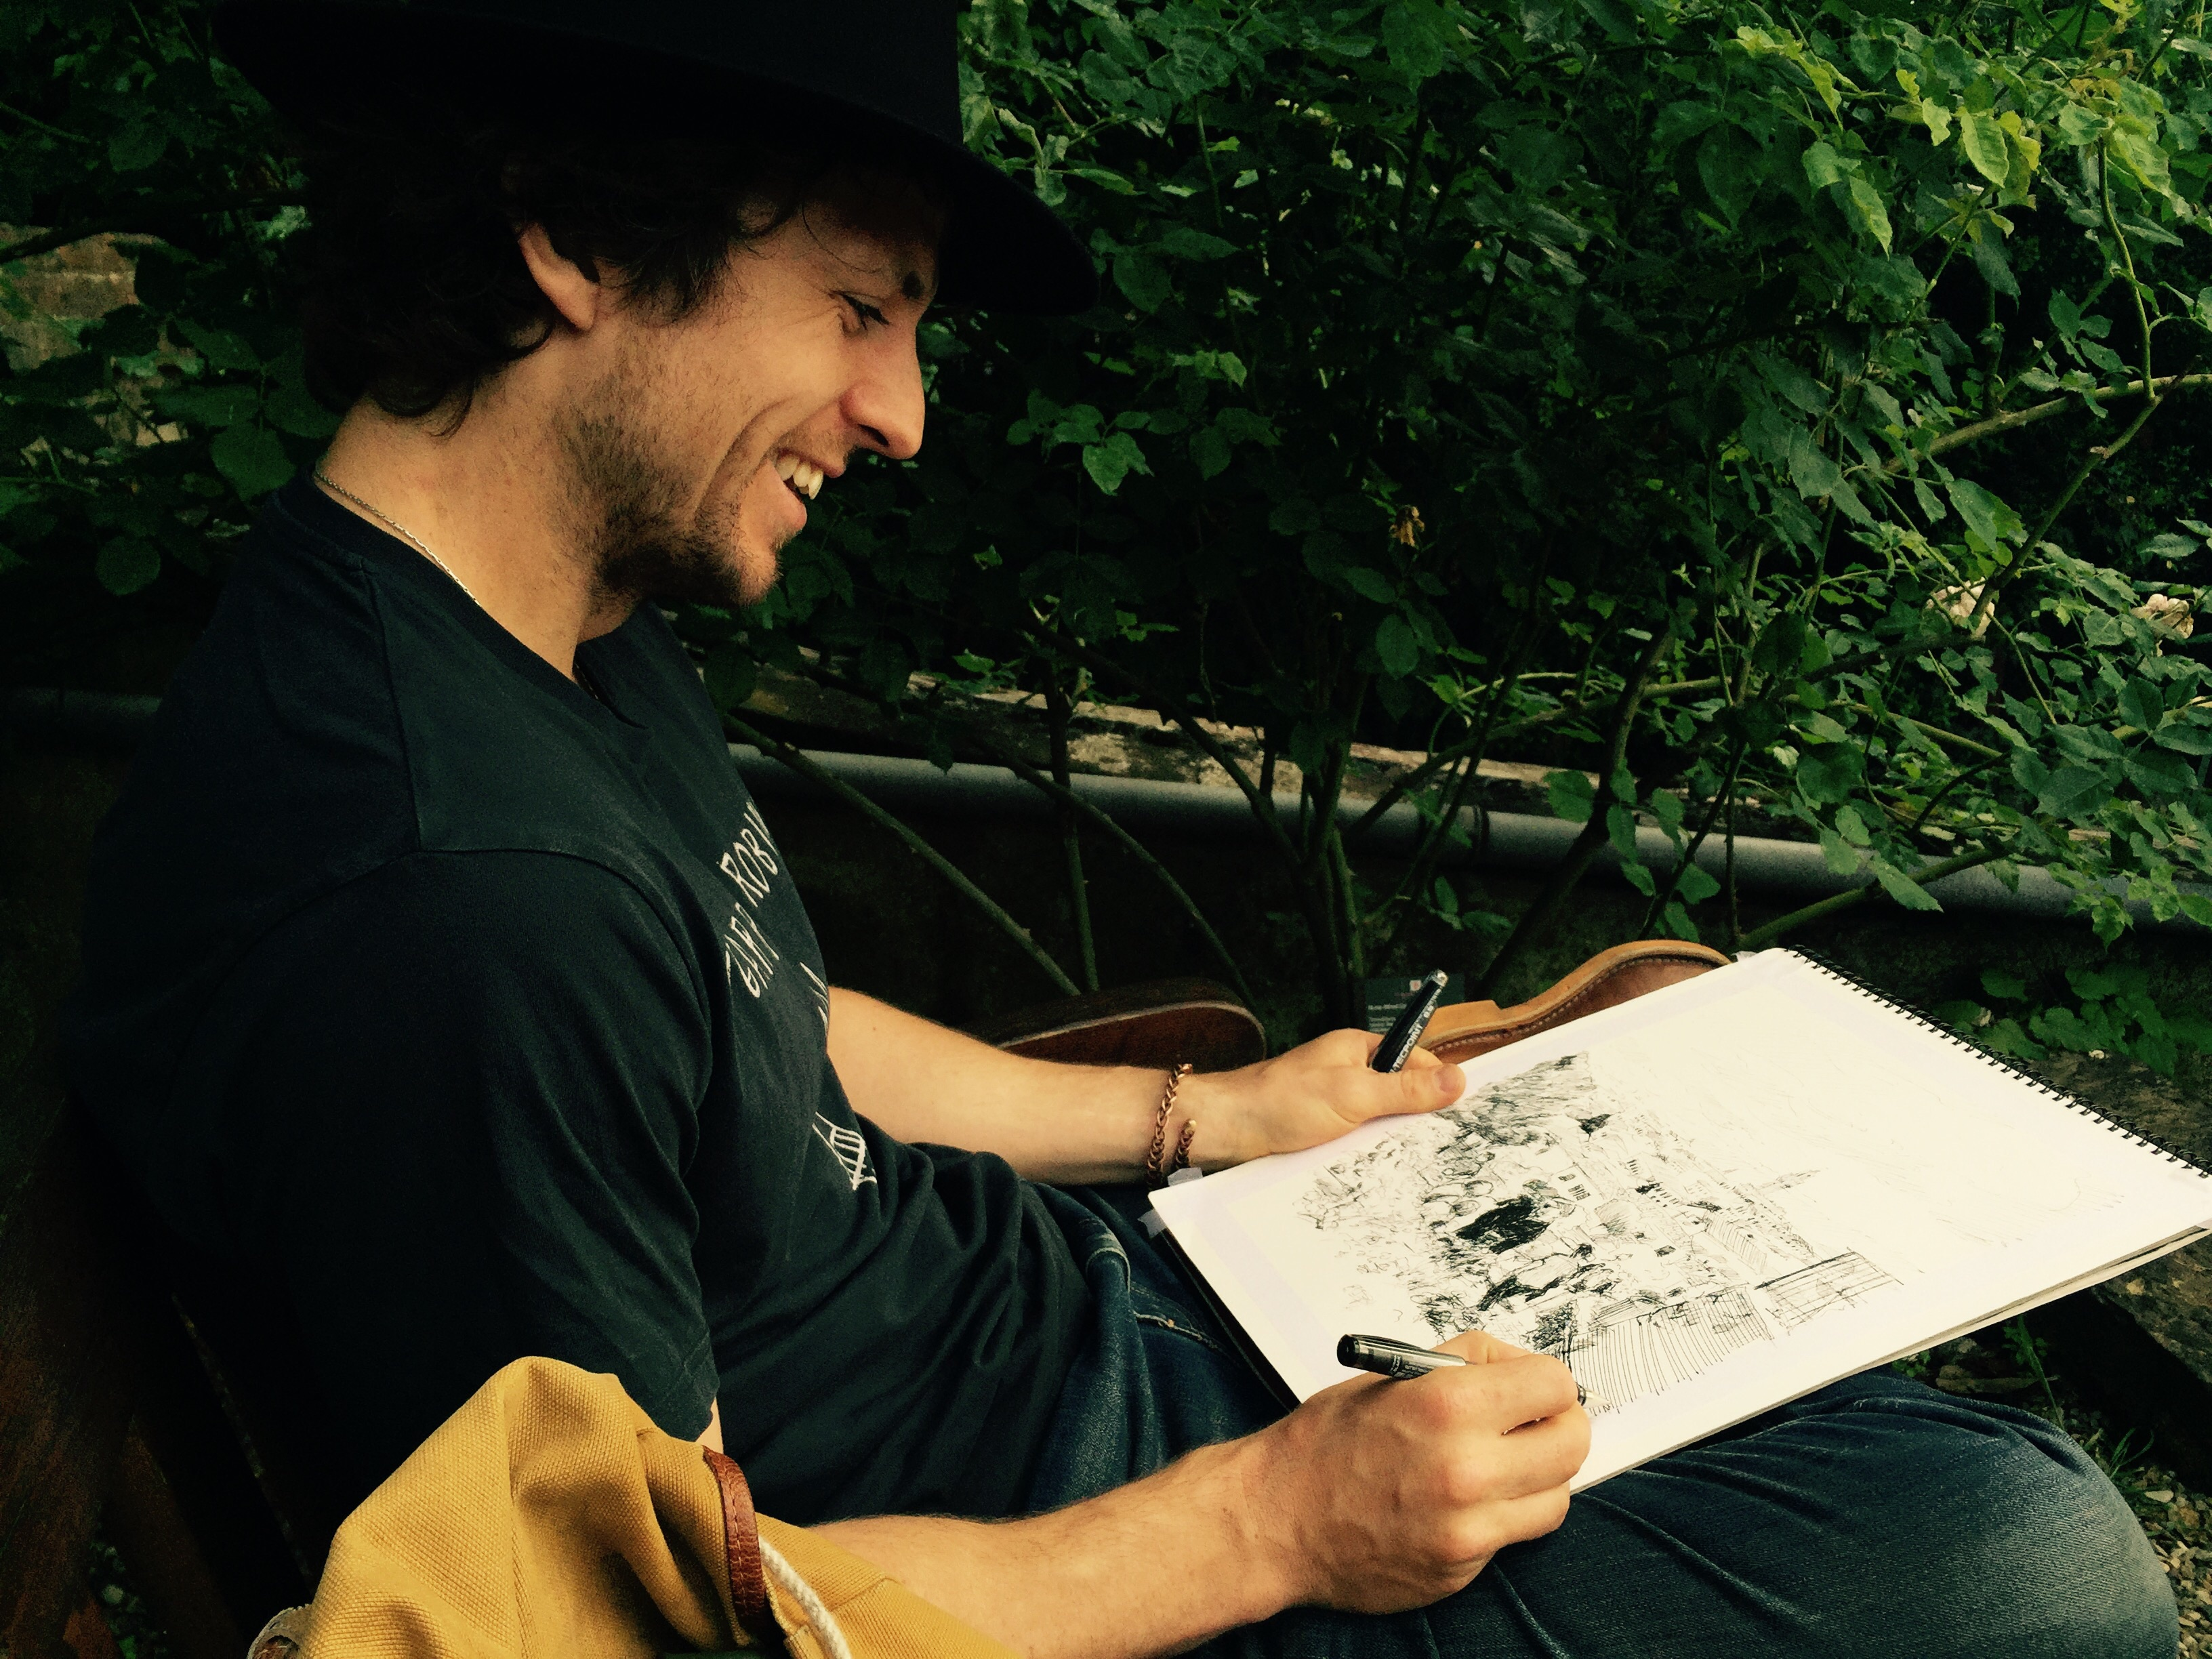 Dan sketching in the Rose Garden, Florence